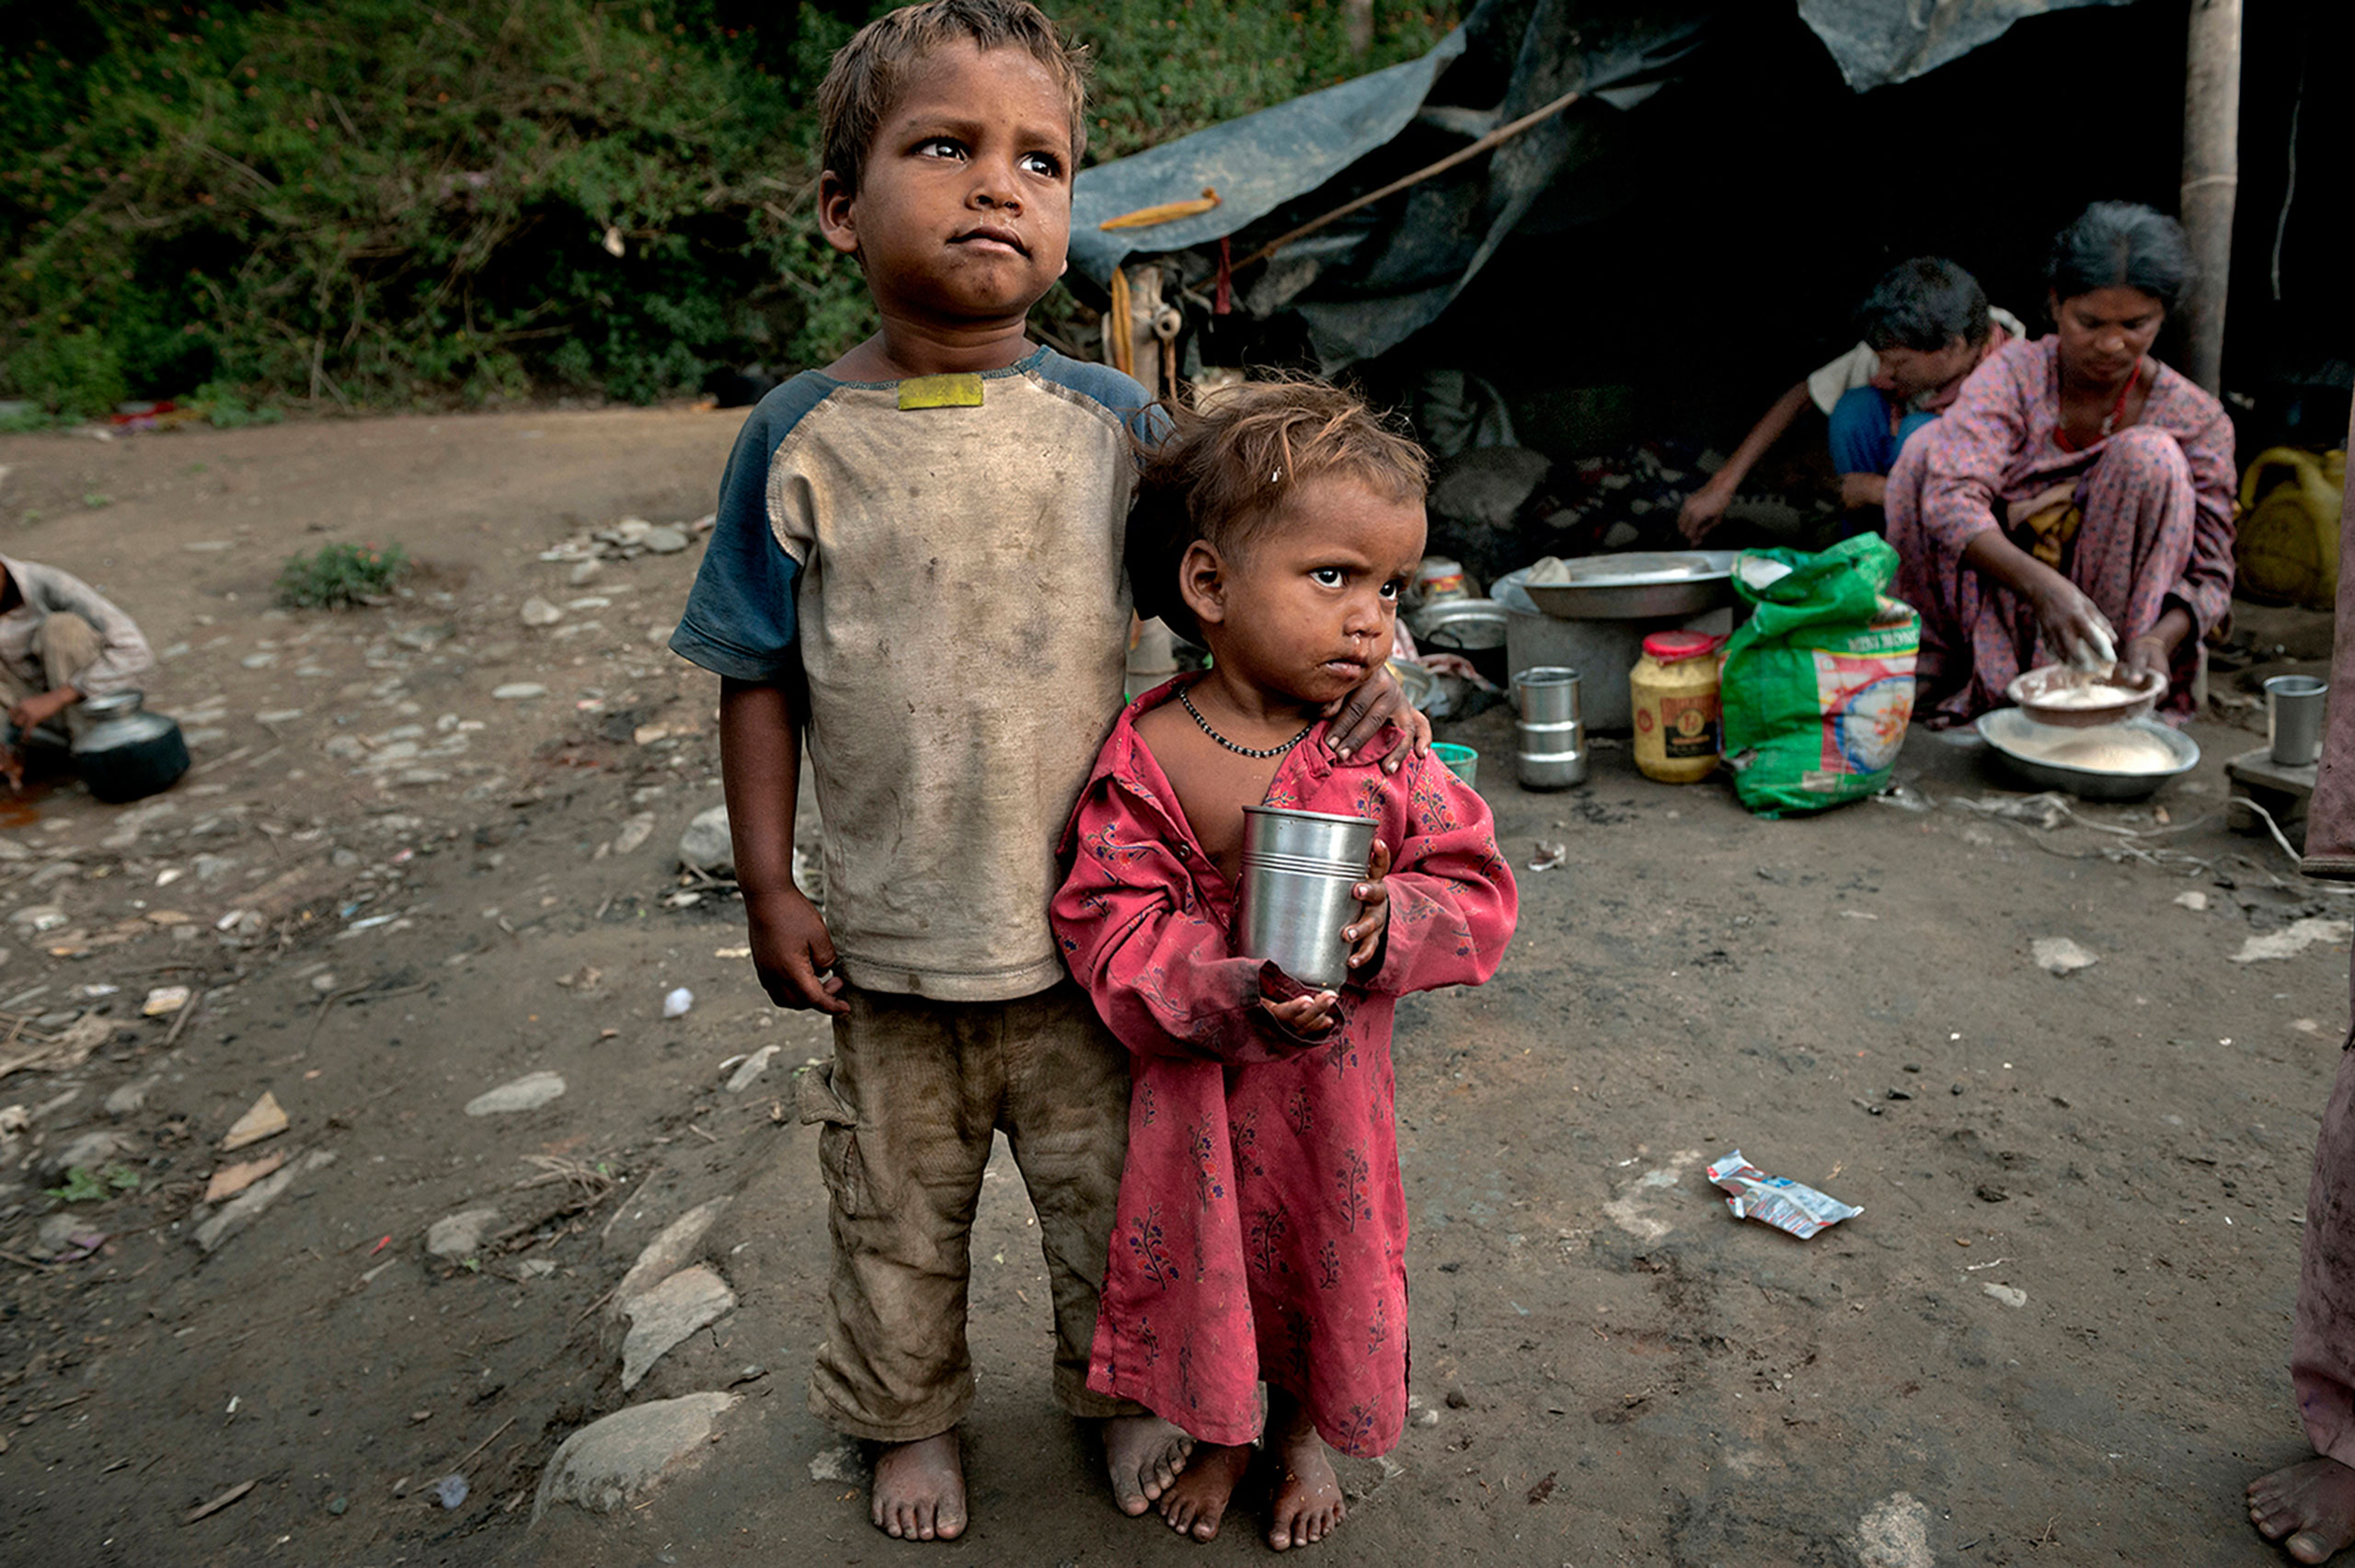 Rudra, 5, and his sister Suhani, 3, search for tea to drink at the Charan slum Settlement in Dharamsala, India, where they live with their family. They survive although two of their siblings recently died of malnutrition.